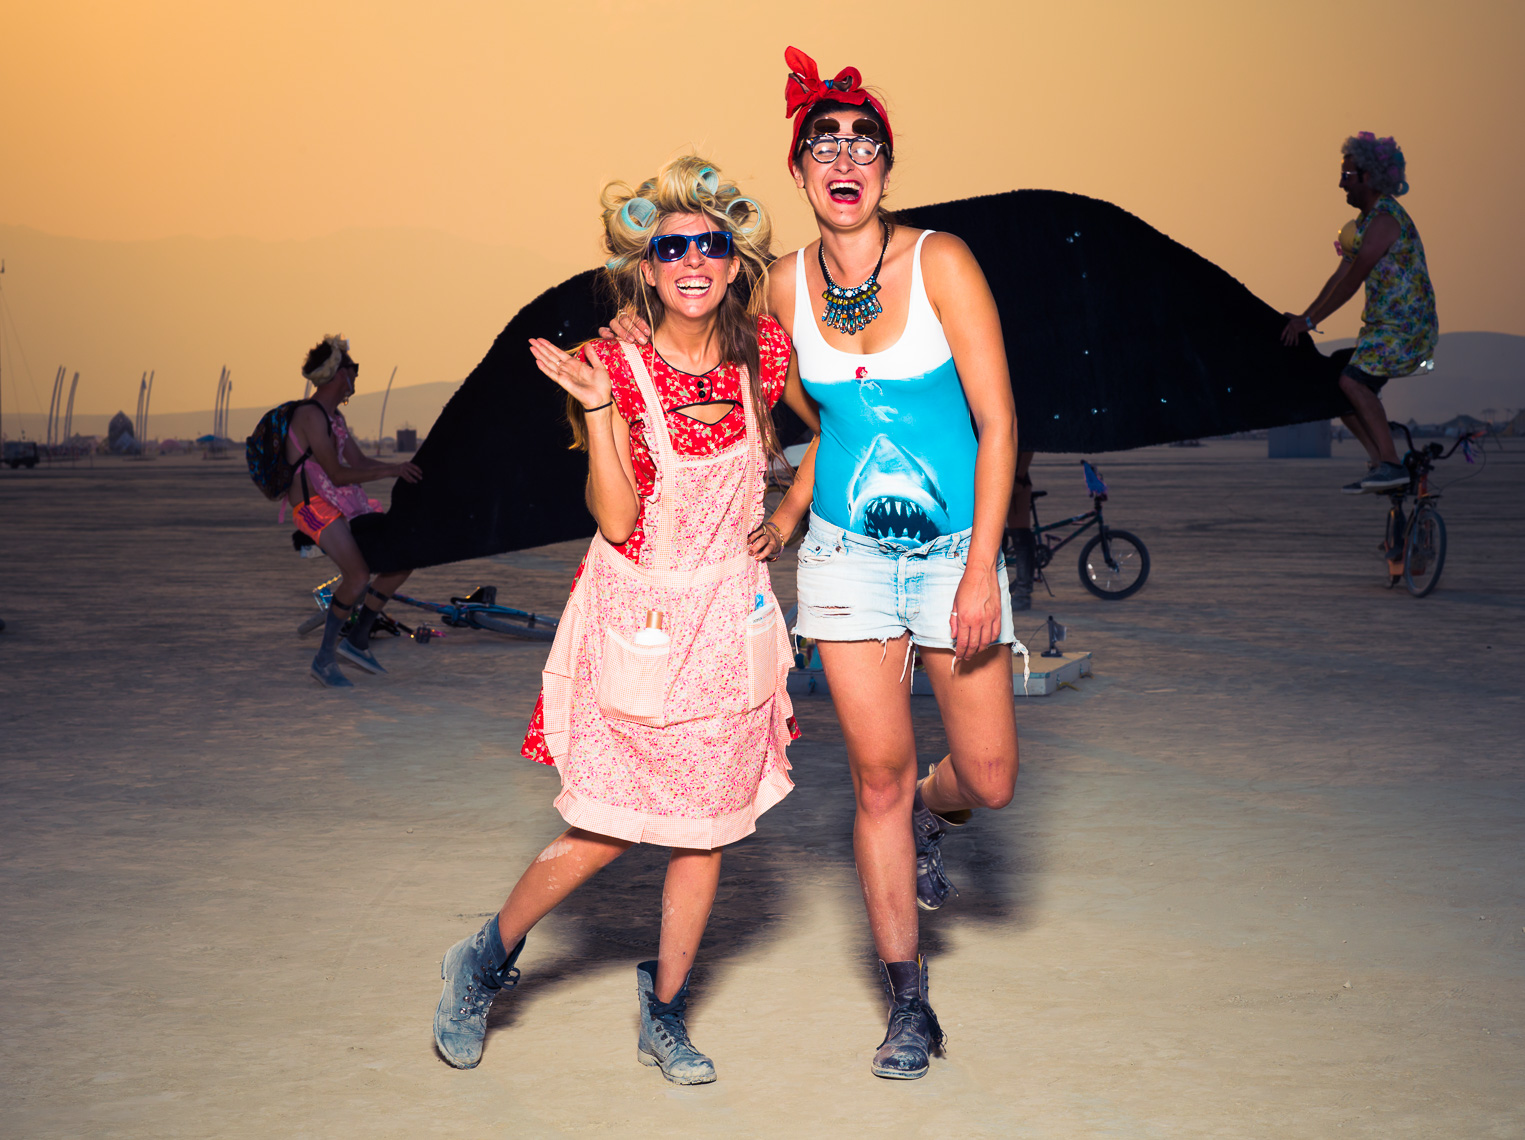 Eric_Schwabel-Burning Man 2013_008403